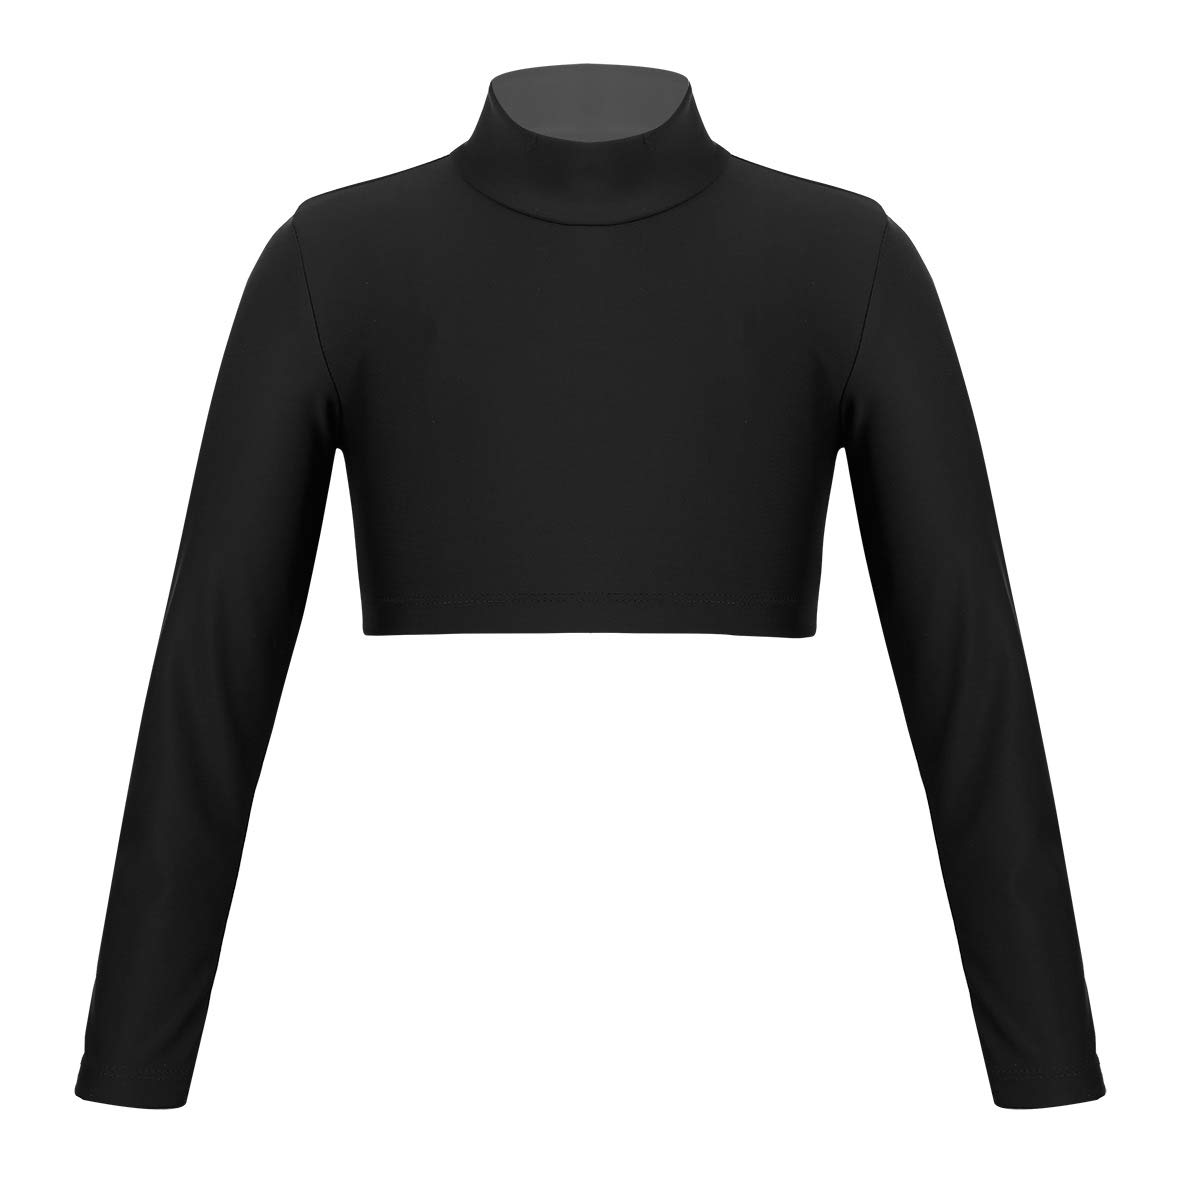 d64682706 Amazon.com: FEESHOW Youth Girls Long Sleeve Turtleneck Mock Neck Sports  Dance Crop Top for Gym Yoga Cheer: Clothing